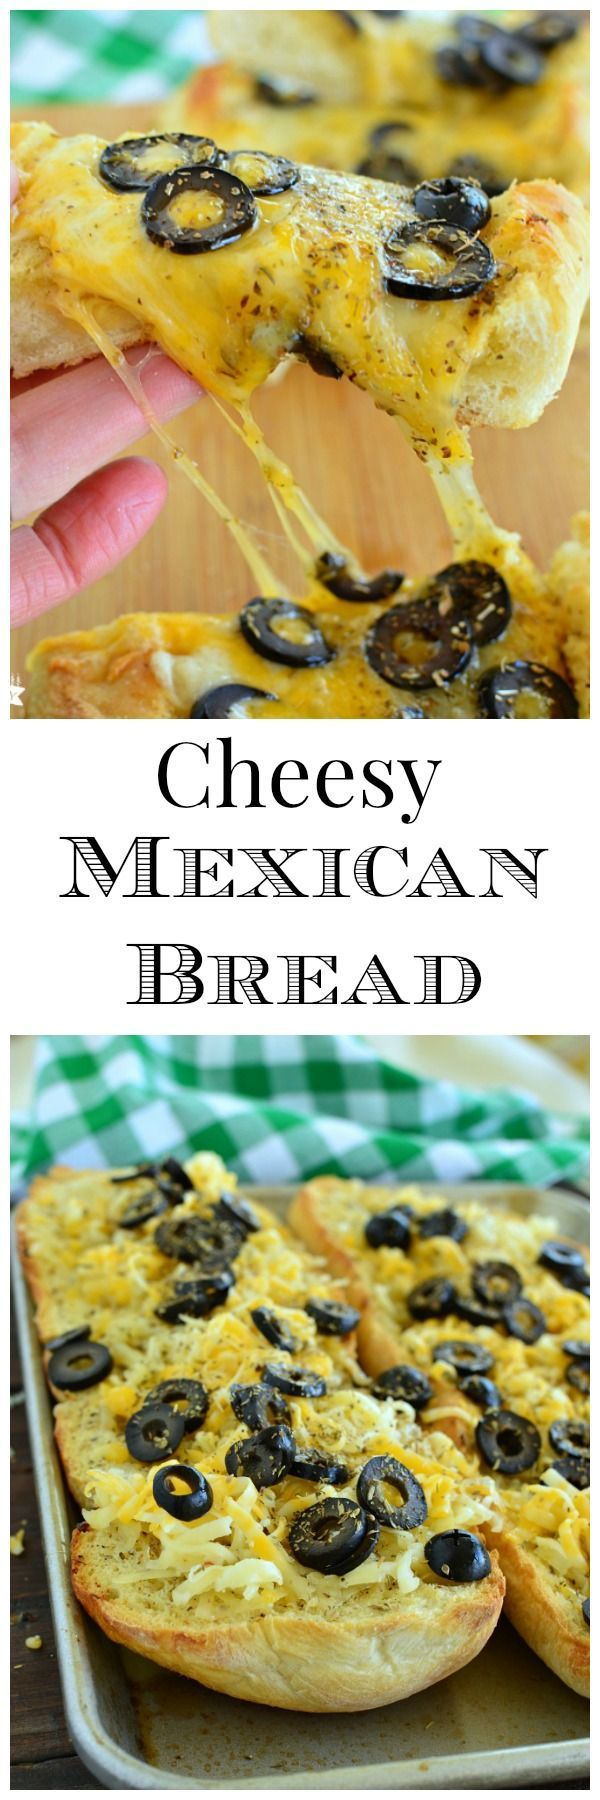 Cheesy Mexican Bread is a spicy twist on traditional Garlic French Bread! Serve it with soup, salad, or with salsa! #easyrecipe #Rhodes #frozen dough www.littledairyontheprairie.com